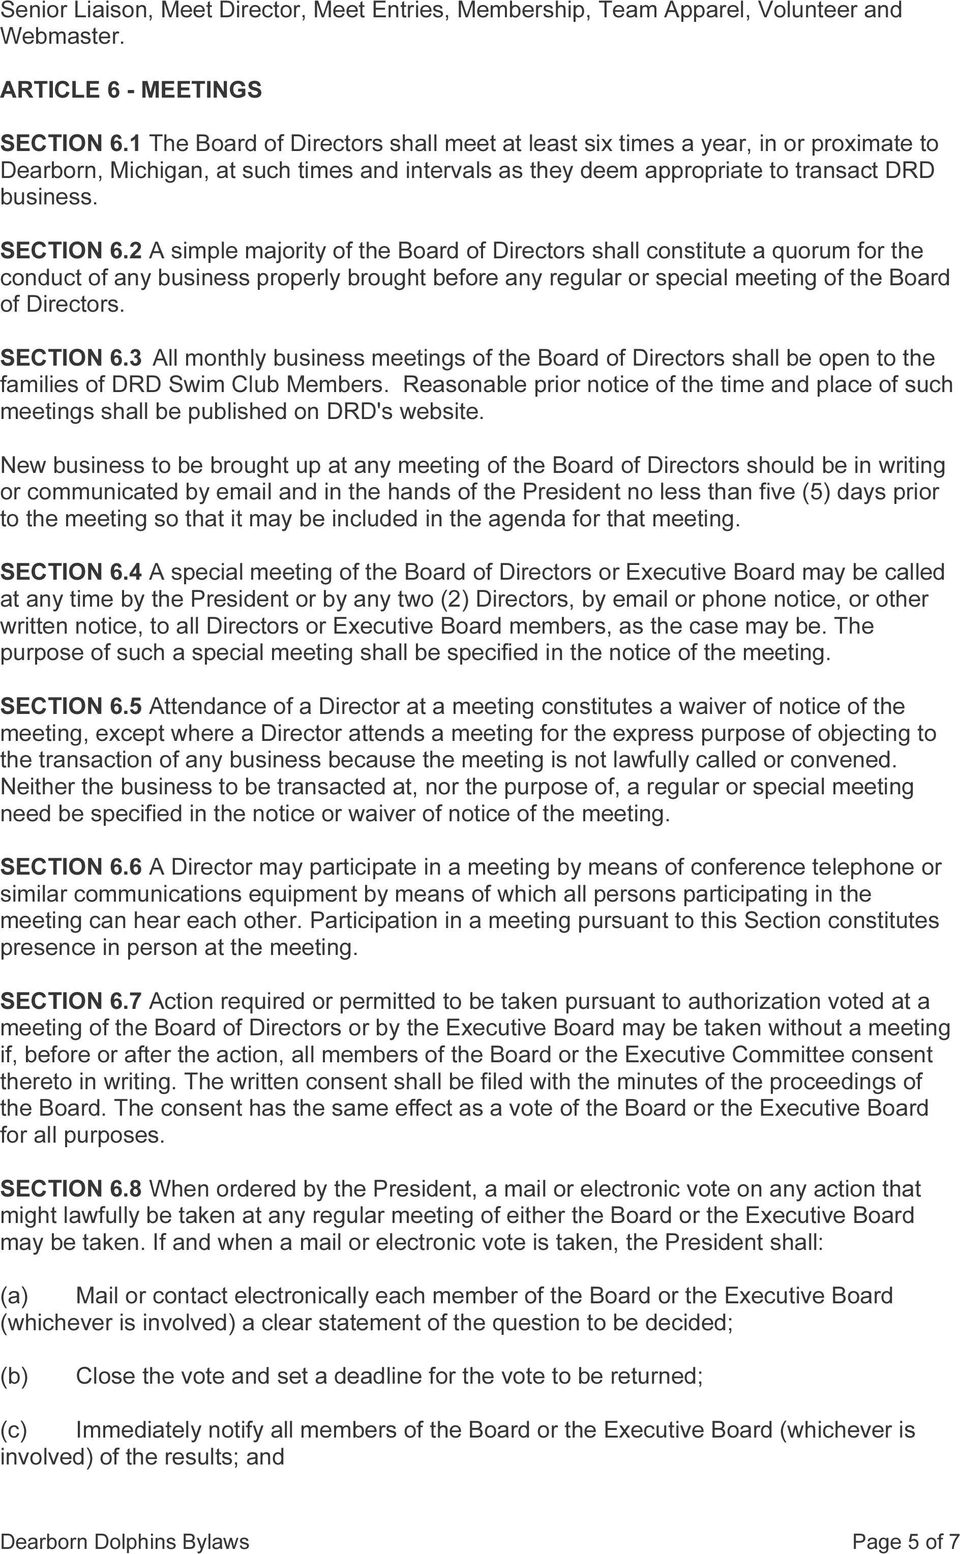 2 A simple majority of the Board of Directors shall constitute a quorum for the conduct of any business properly brought before any regular or special meeting of the Board of Directors. SECTION 6.